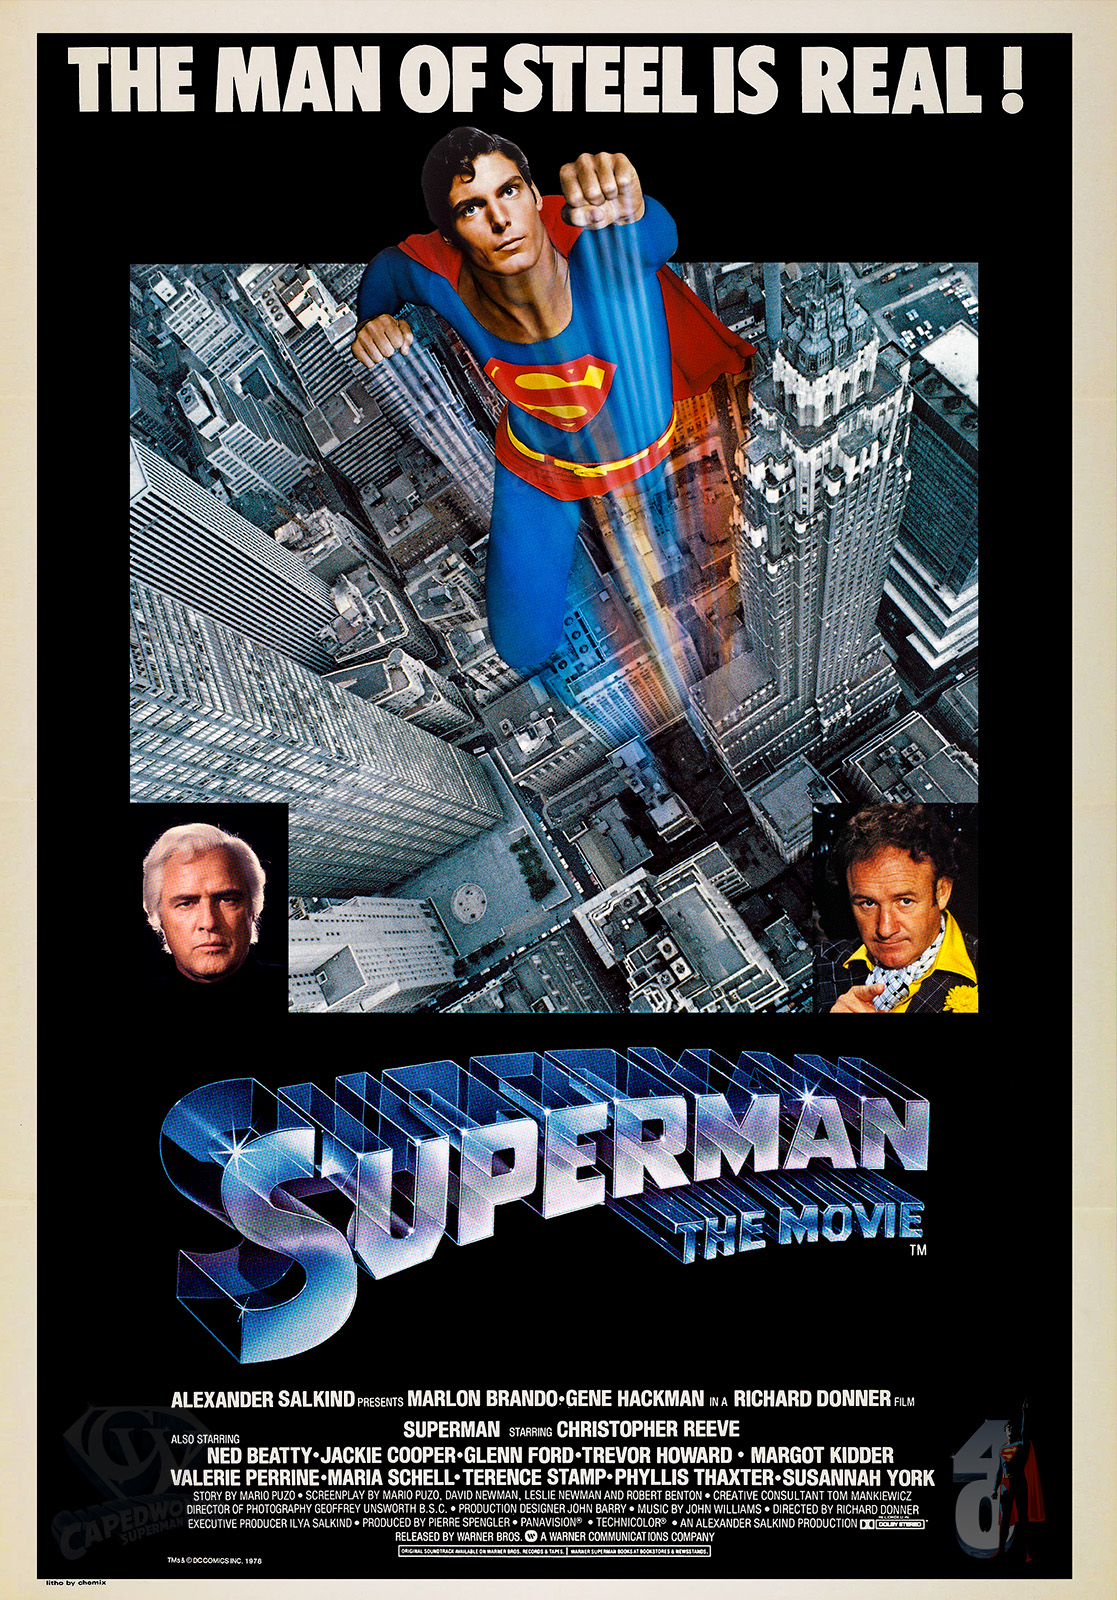 CW-STM-intl-one-sheet-man-of-steel-real-enhanced